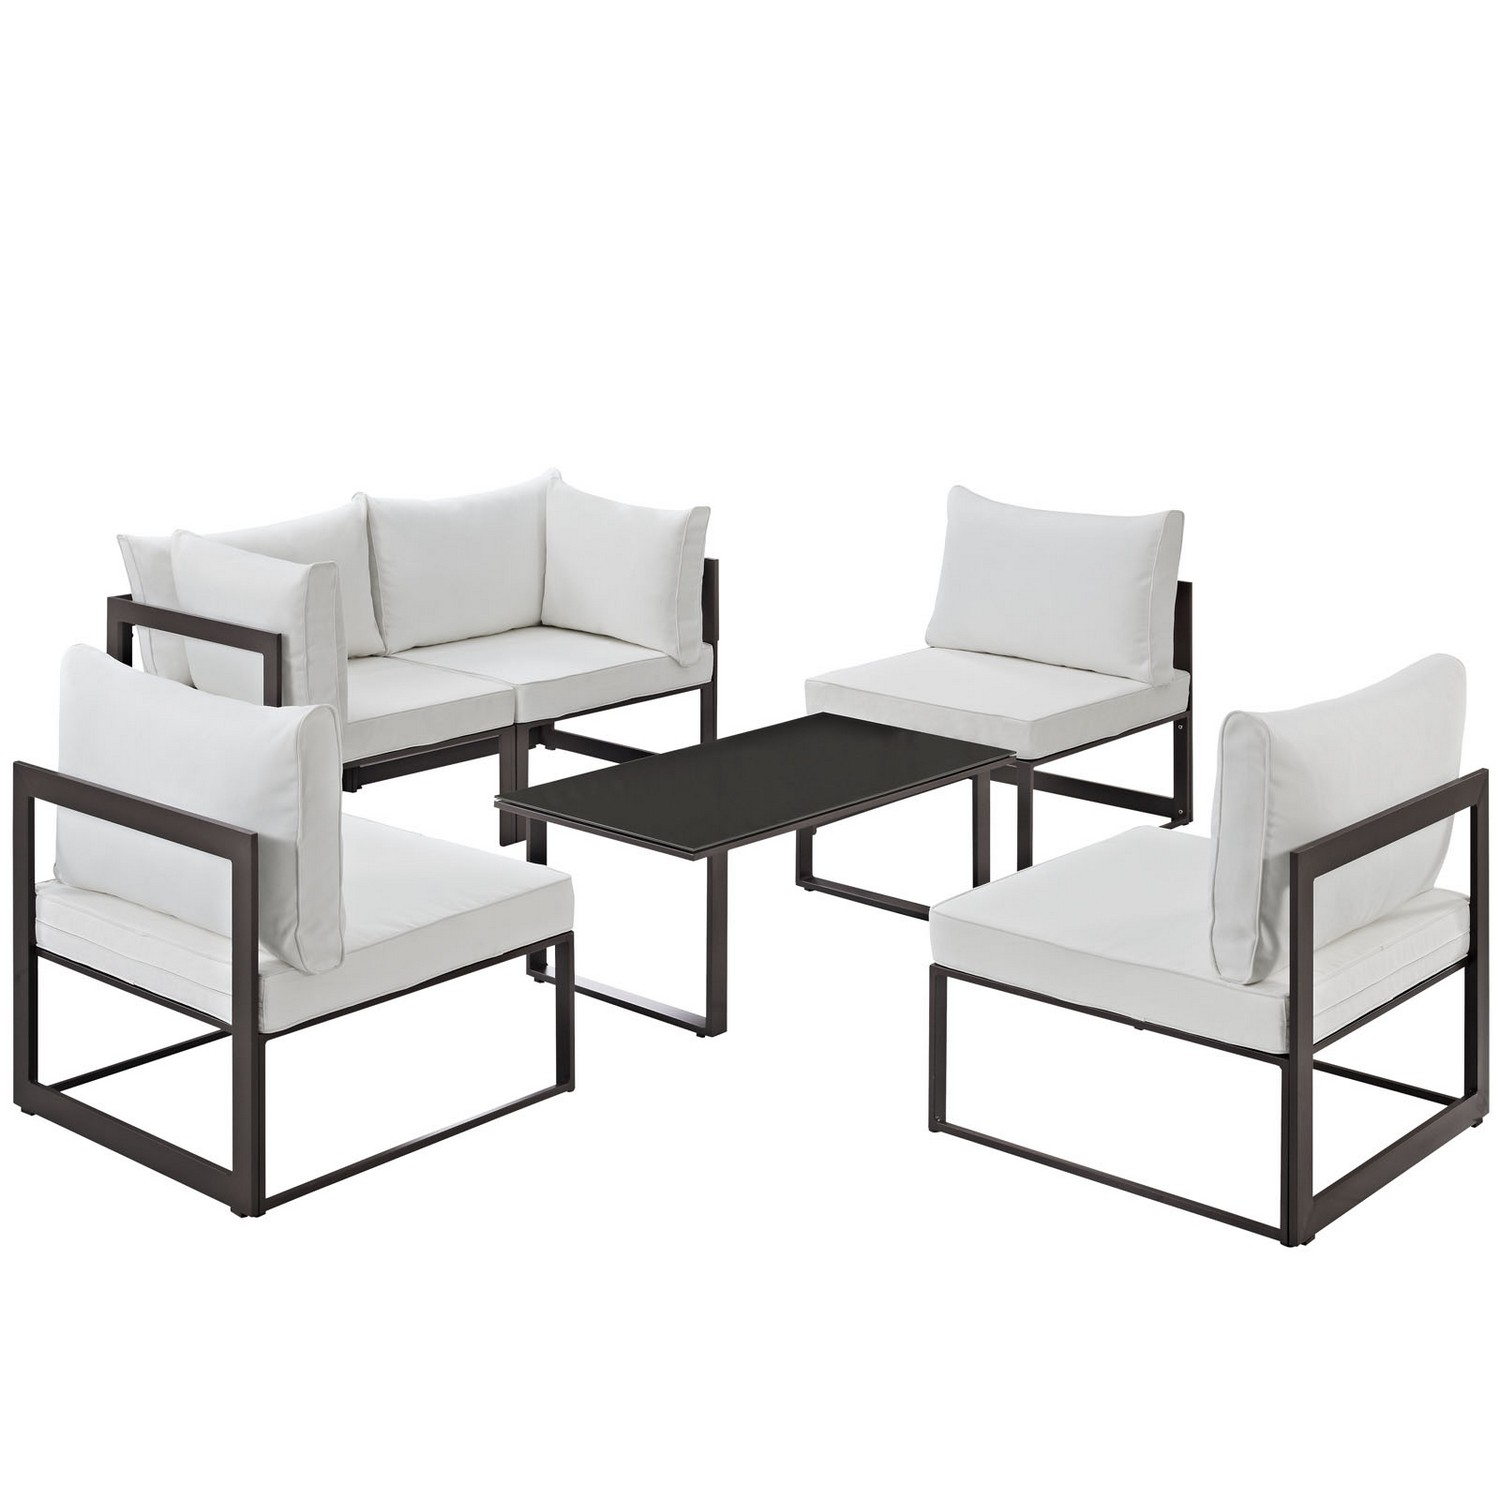 Modway Fortuna 6 Piece Outdoor Patio Sectional Sofa Set - Brown/White